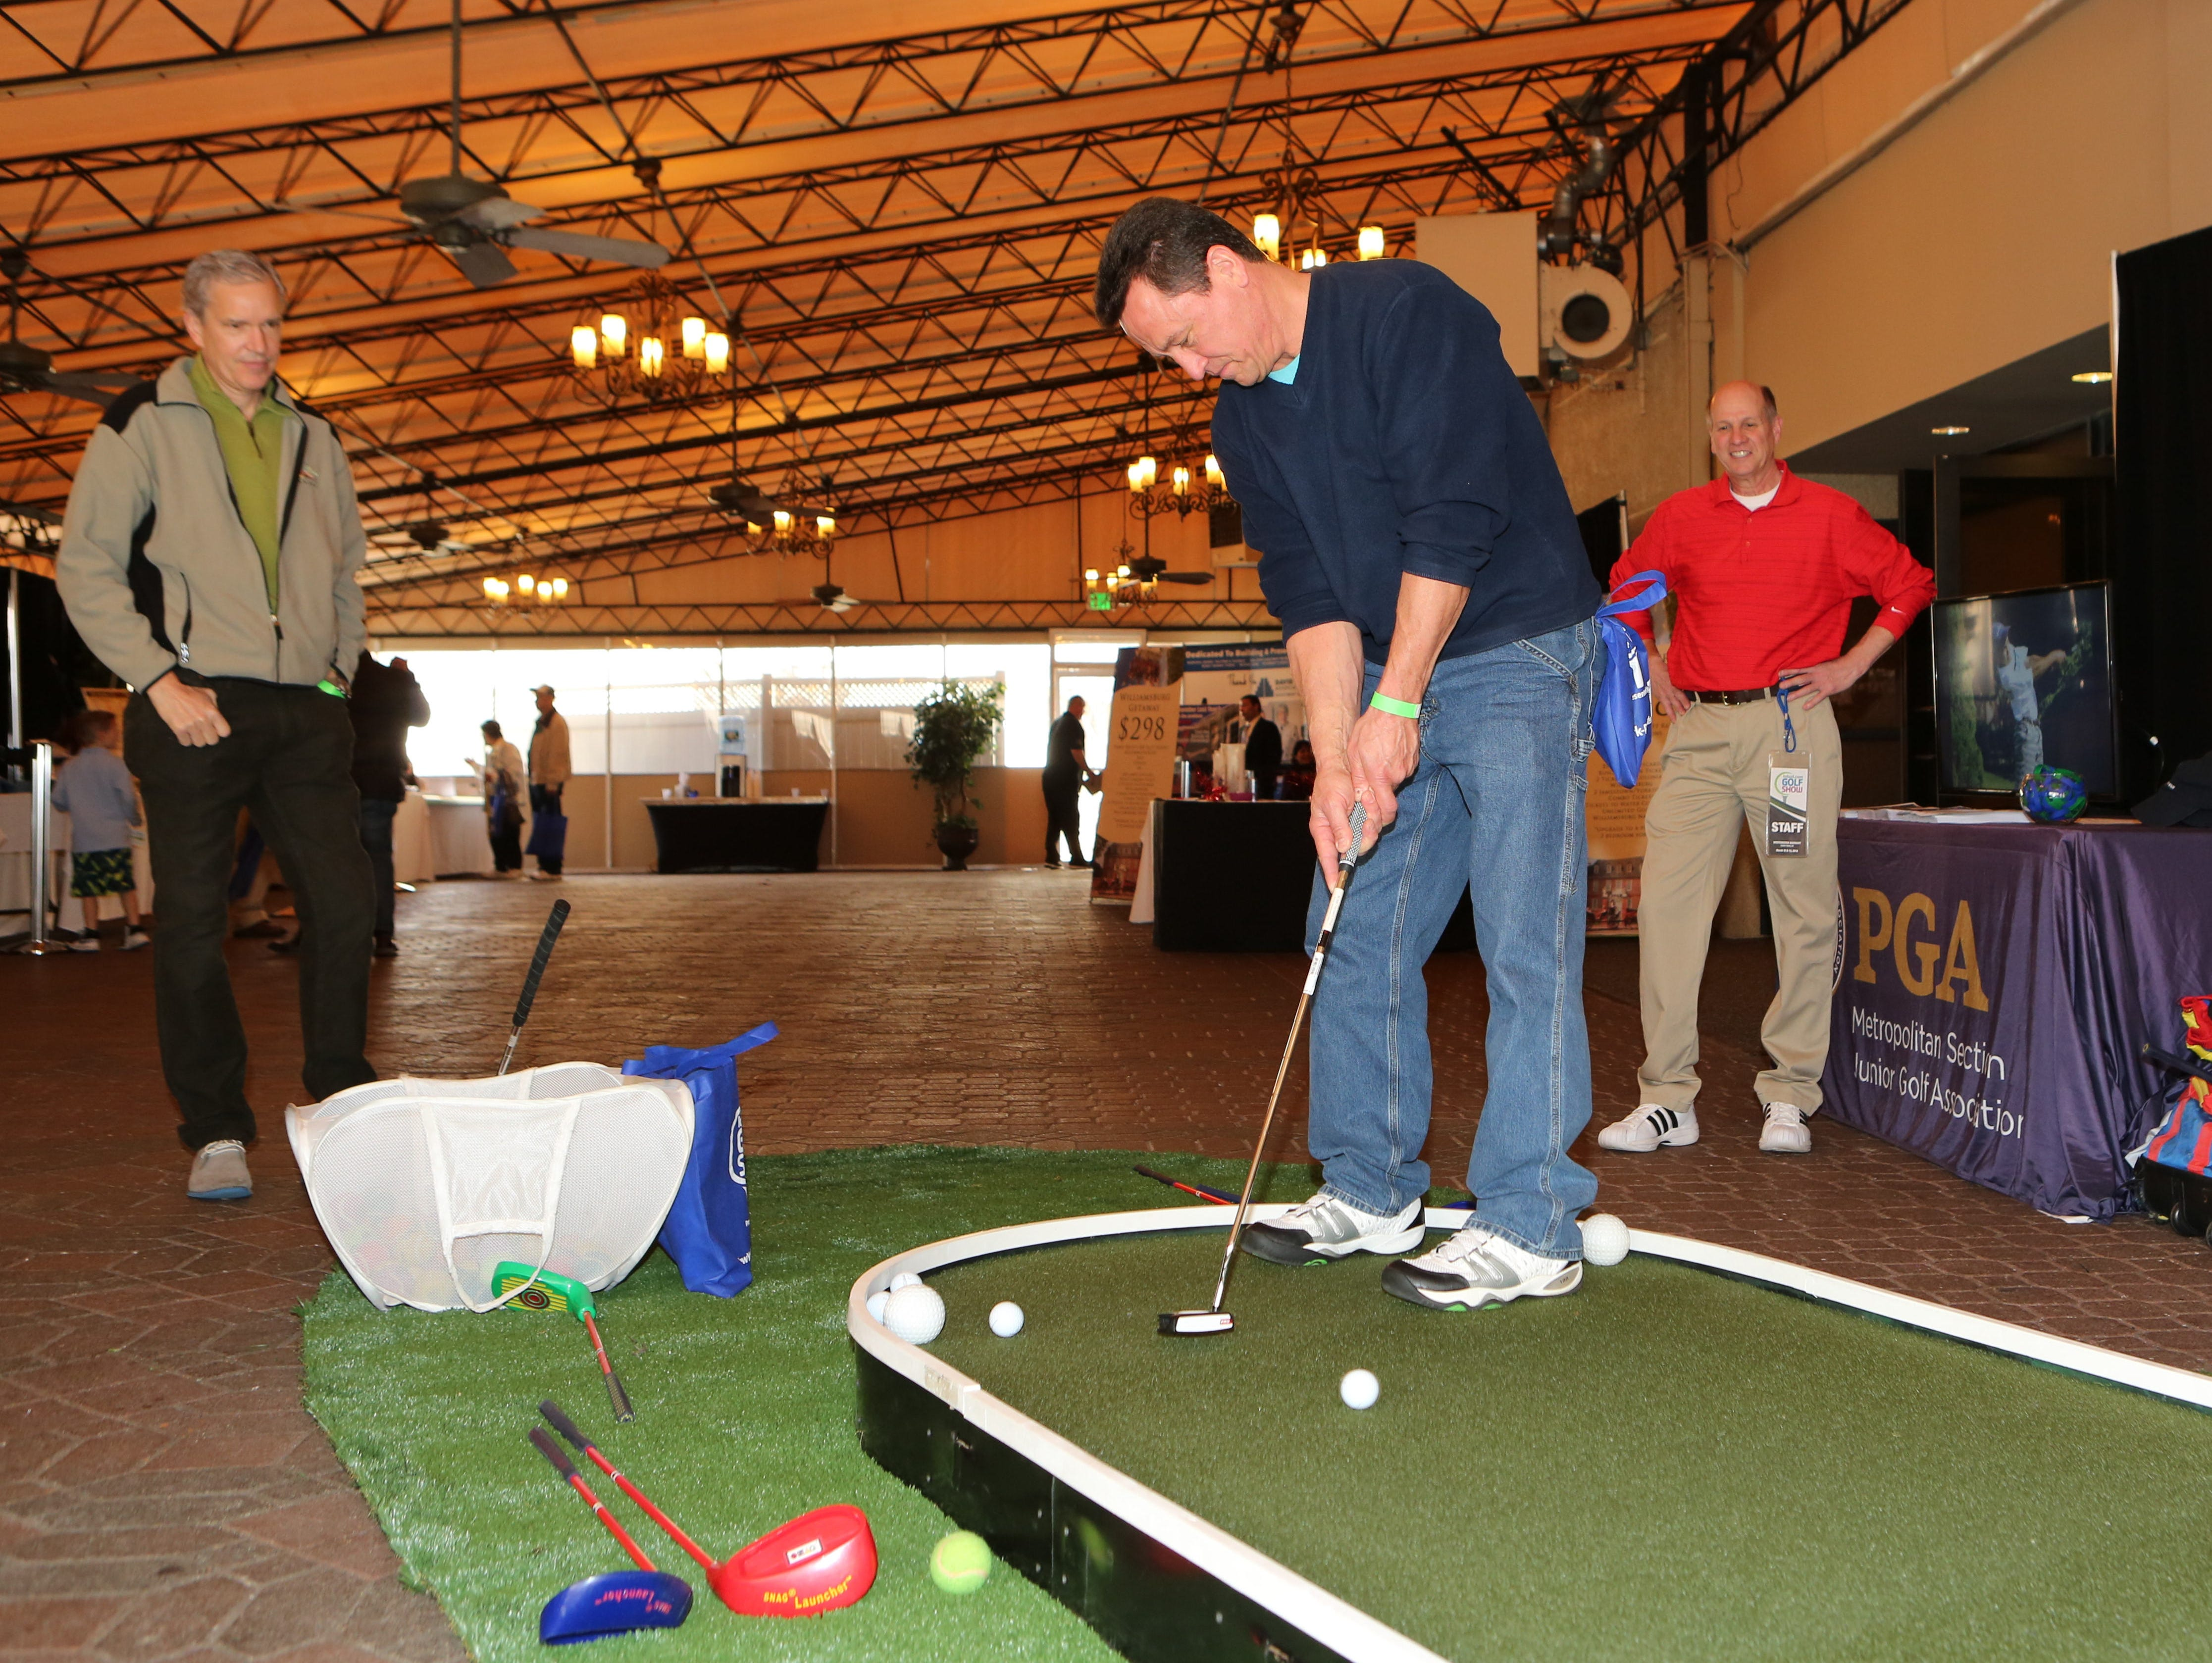 Joe Moravsky from Sherman, Connecticut gives putting a try at the lohud.com Golf Show at the Westchester Marriott in Tarrytown, March 12, 2016. The show continues Sunday, March 13, 2016 from 9:00 a.m. till 4:00 p.m.